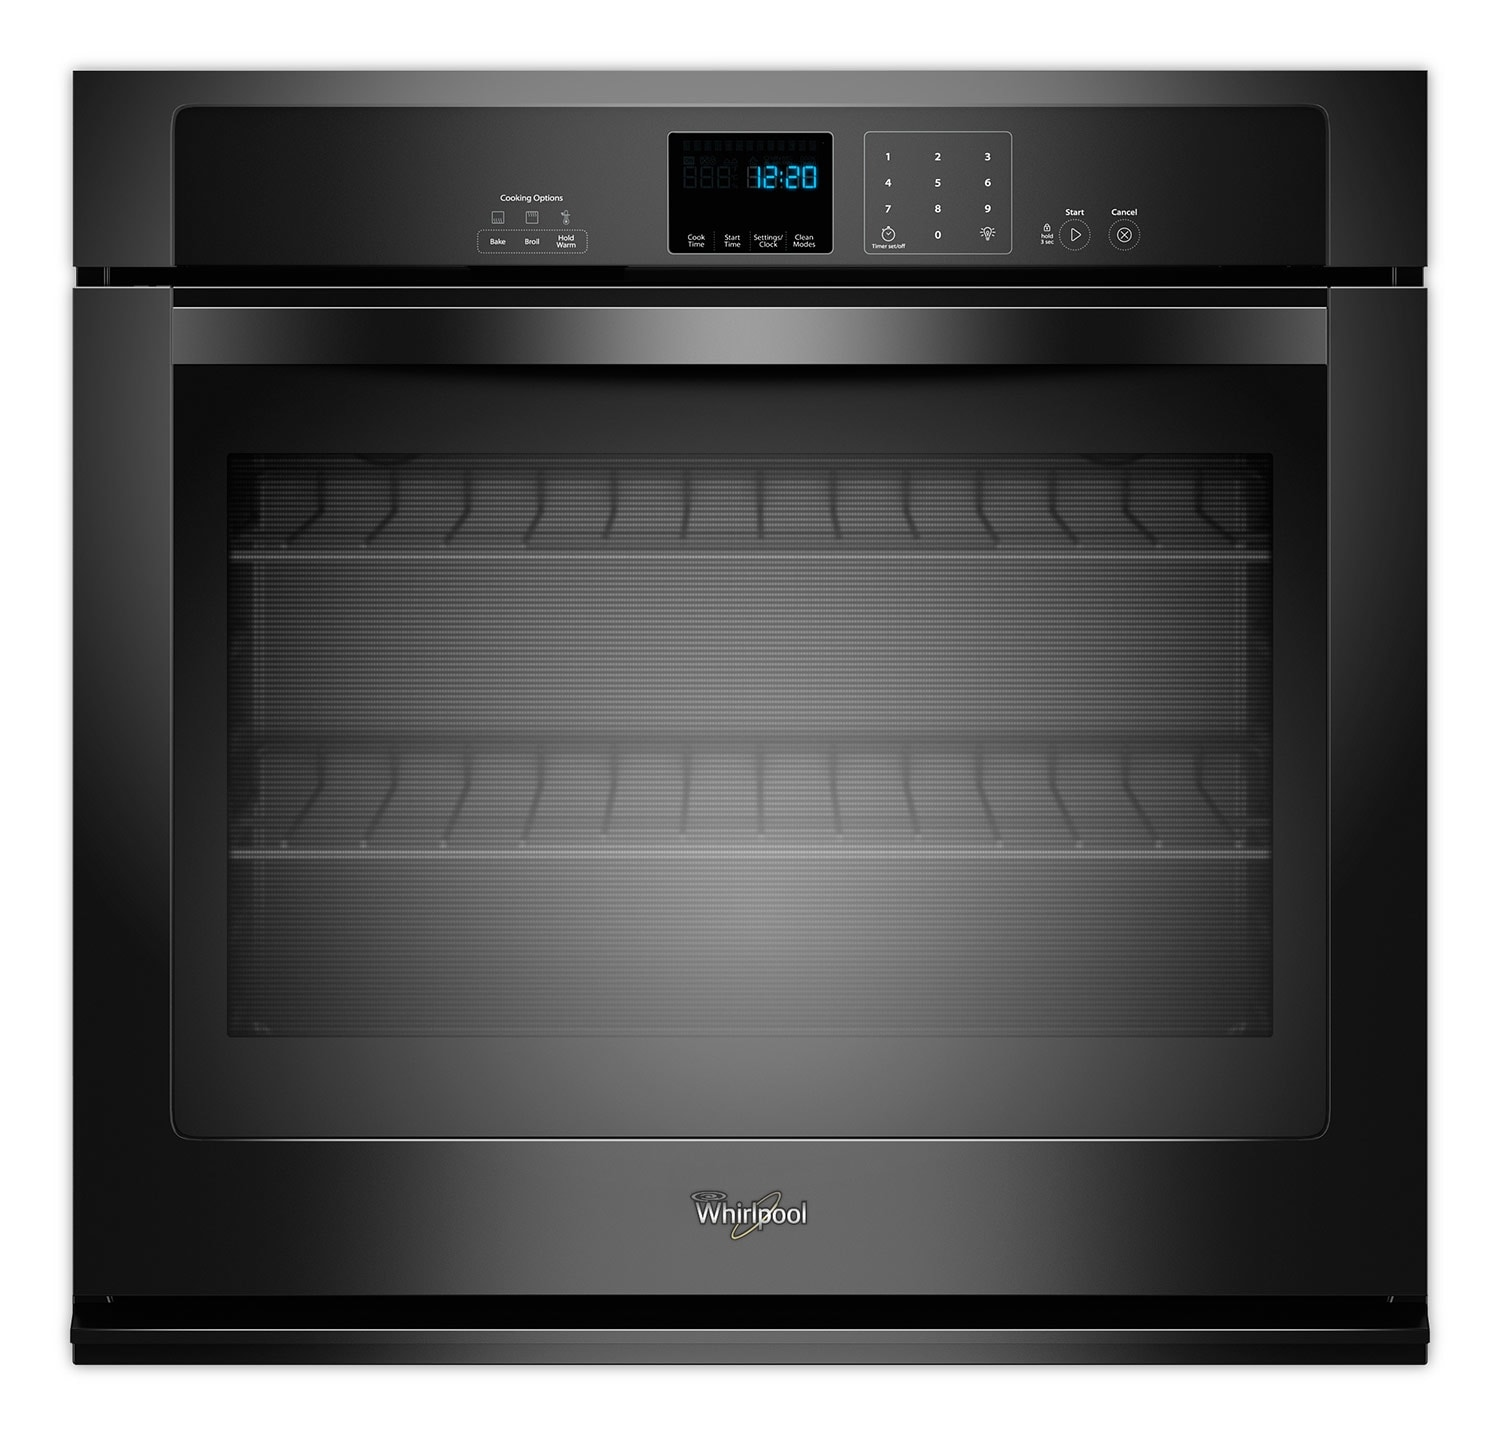 Whirlpool 5.0 Cu. Ft. Single Wall Oven – WOS51EC0AB